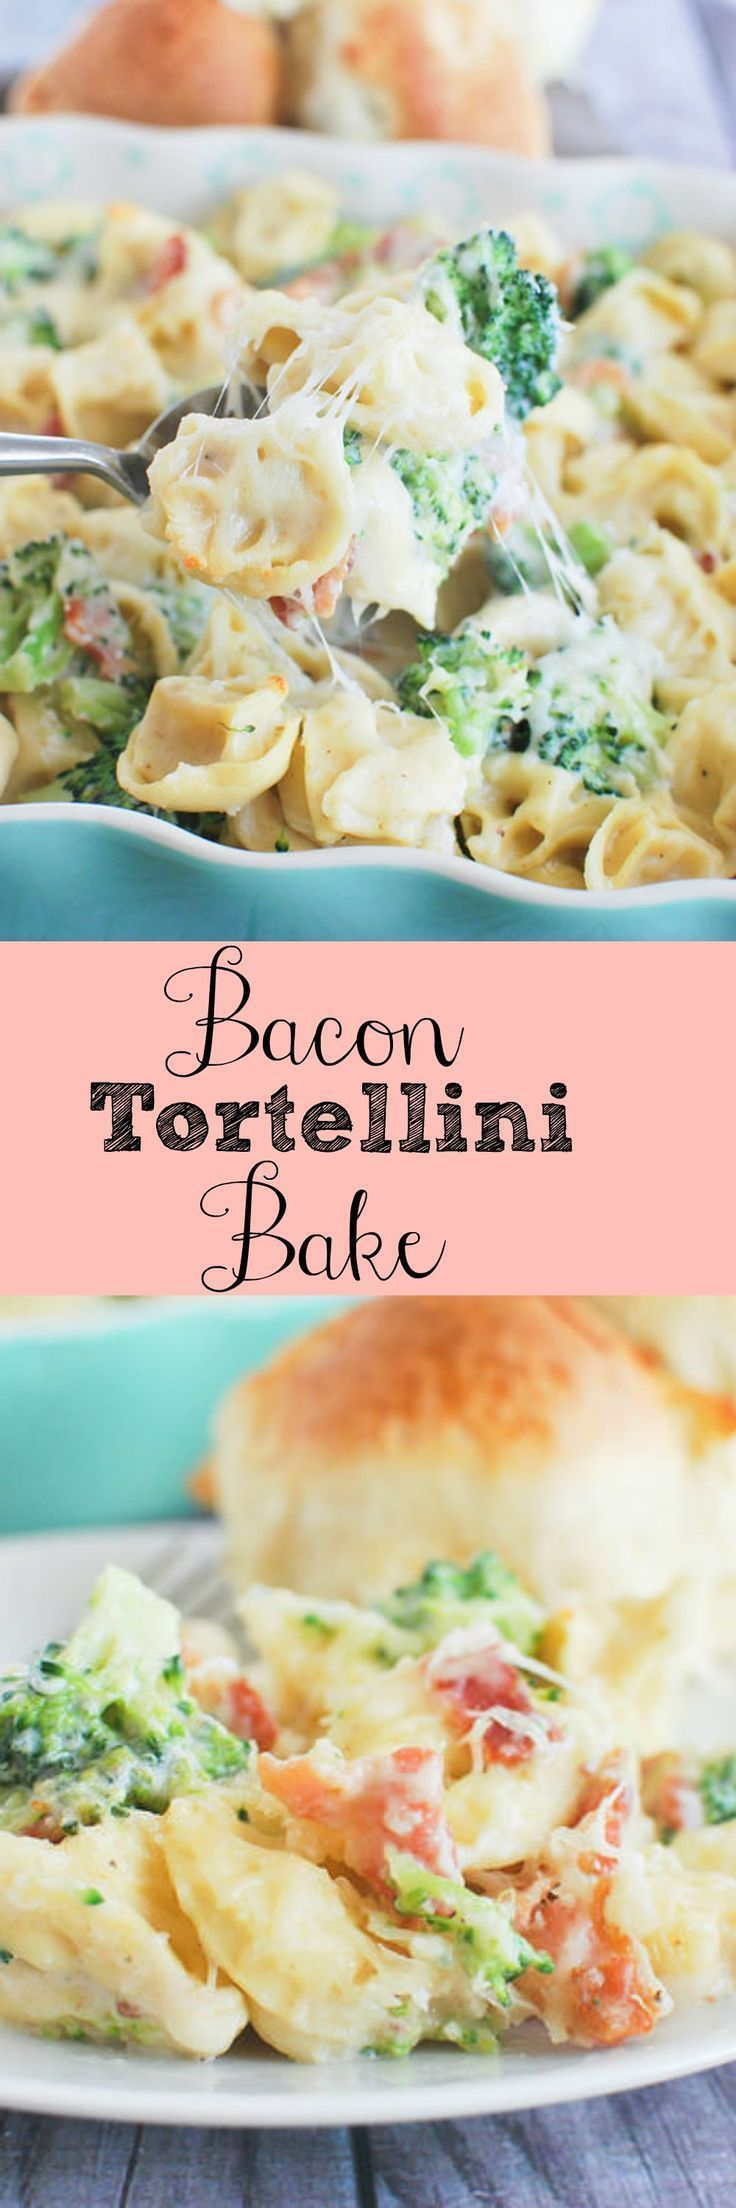 Bacon Tortellini Bake - delicious 30 minute meal! (Macaroni Noodle Recipes)